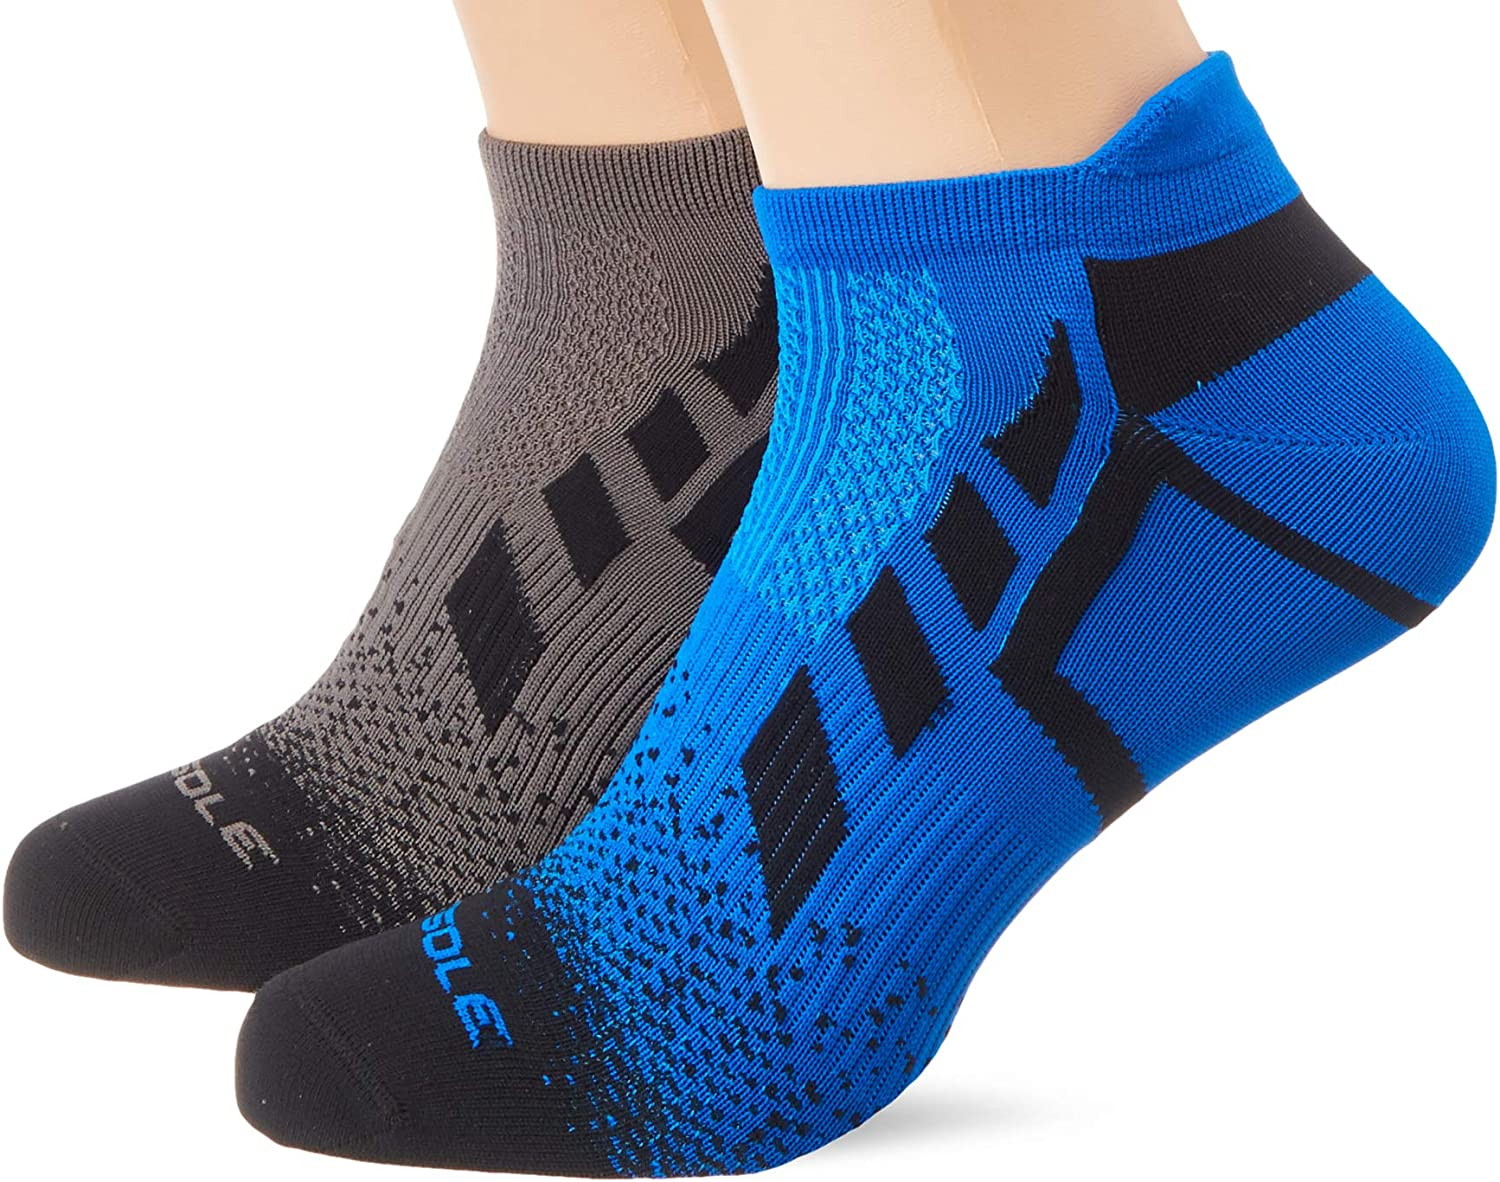 Mujer SofSole Socks Running Select Calcetines